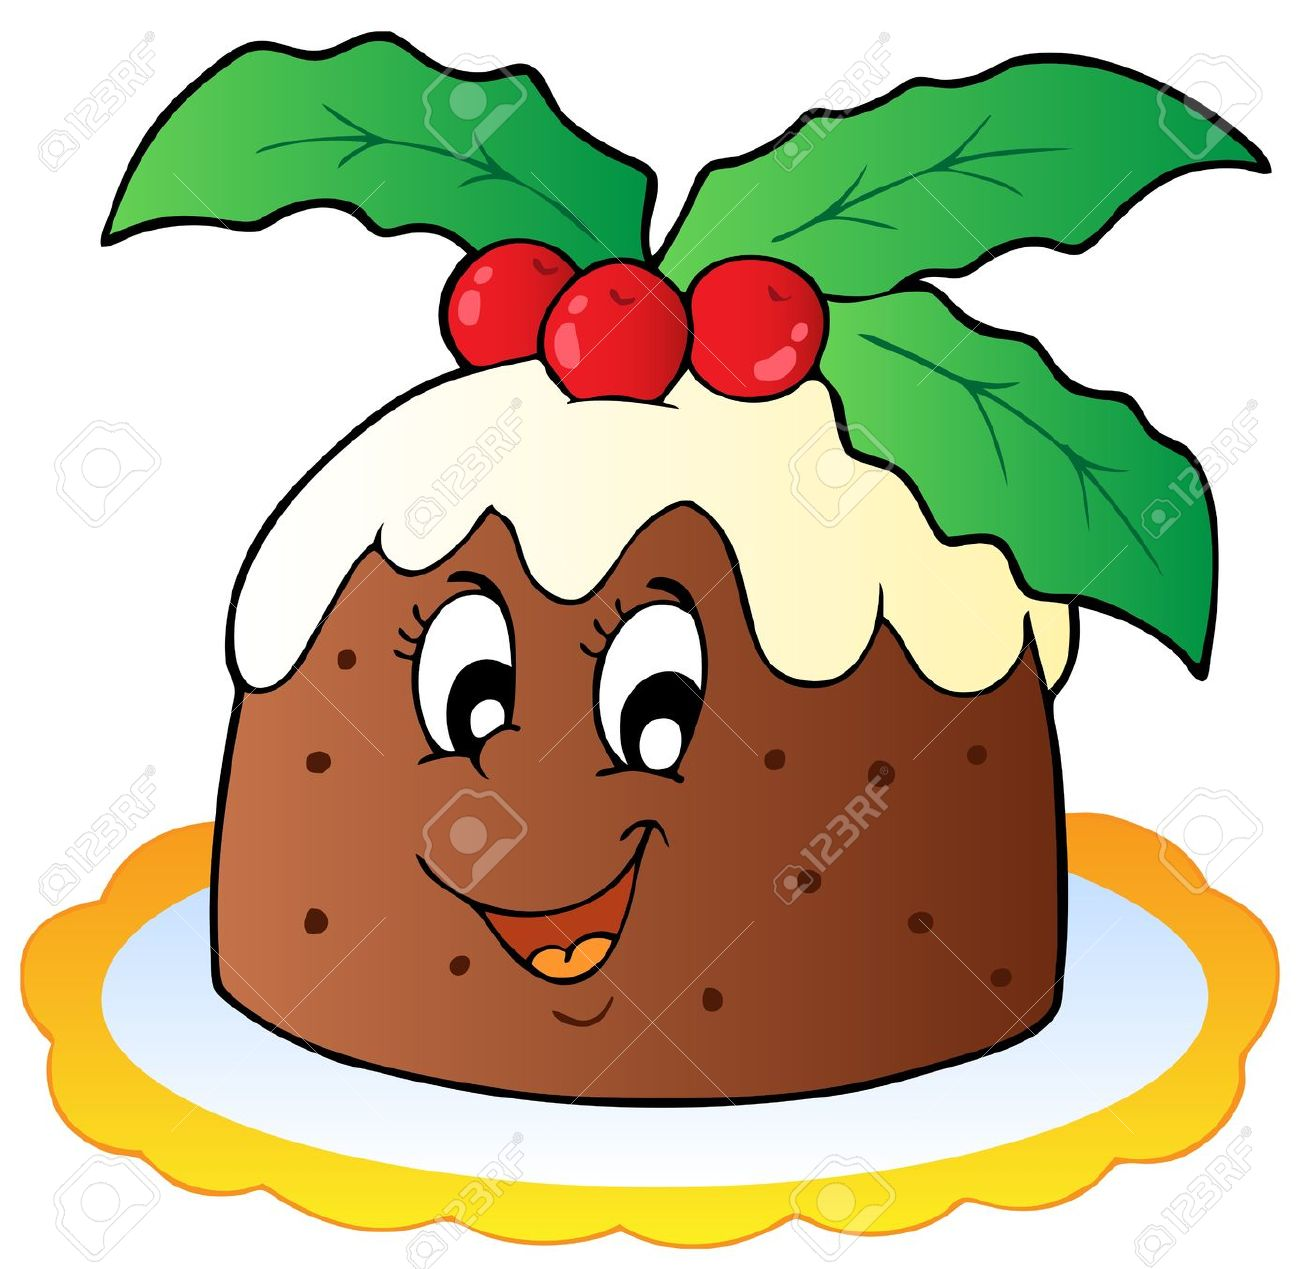 Christmas Pudding Pictures.